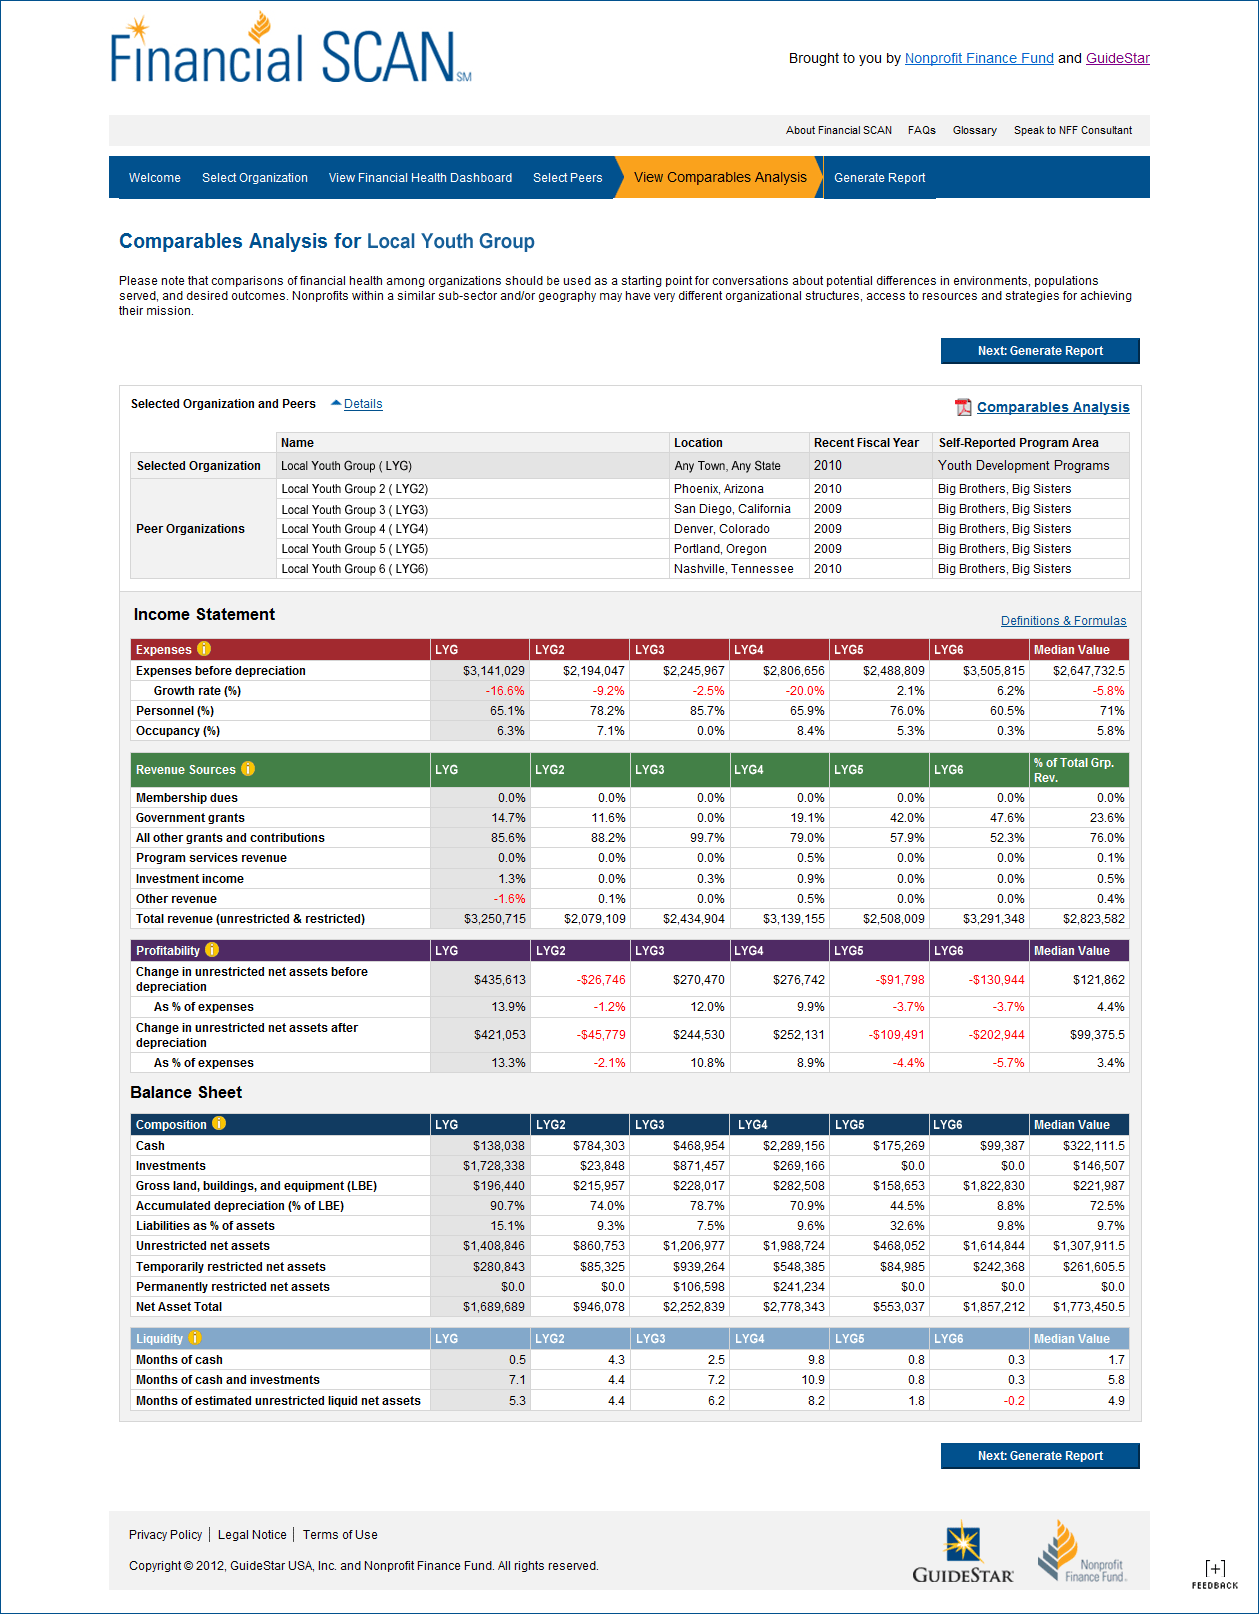 About The Financial Scan Report